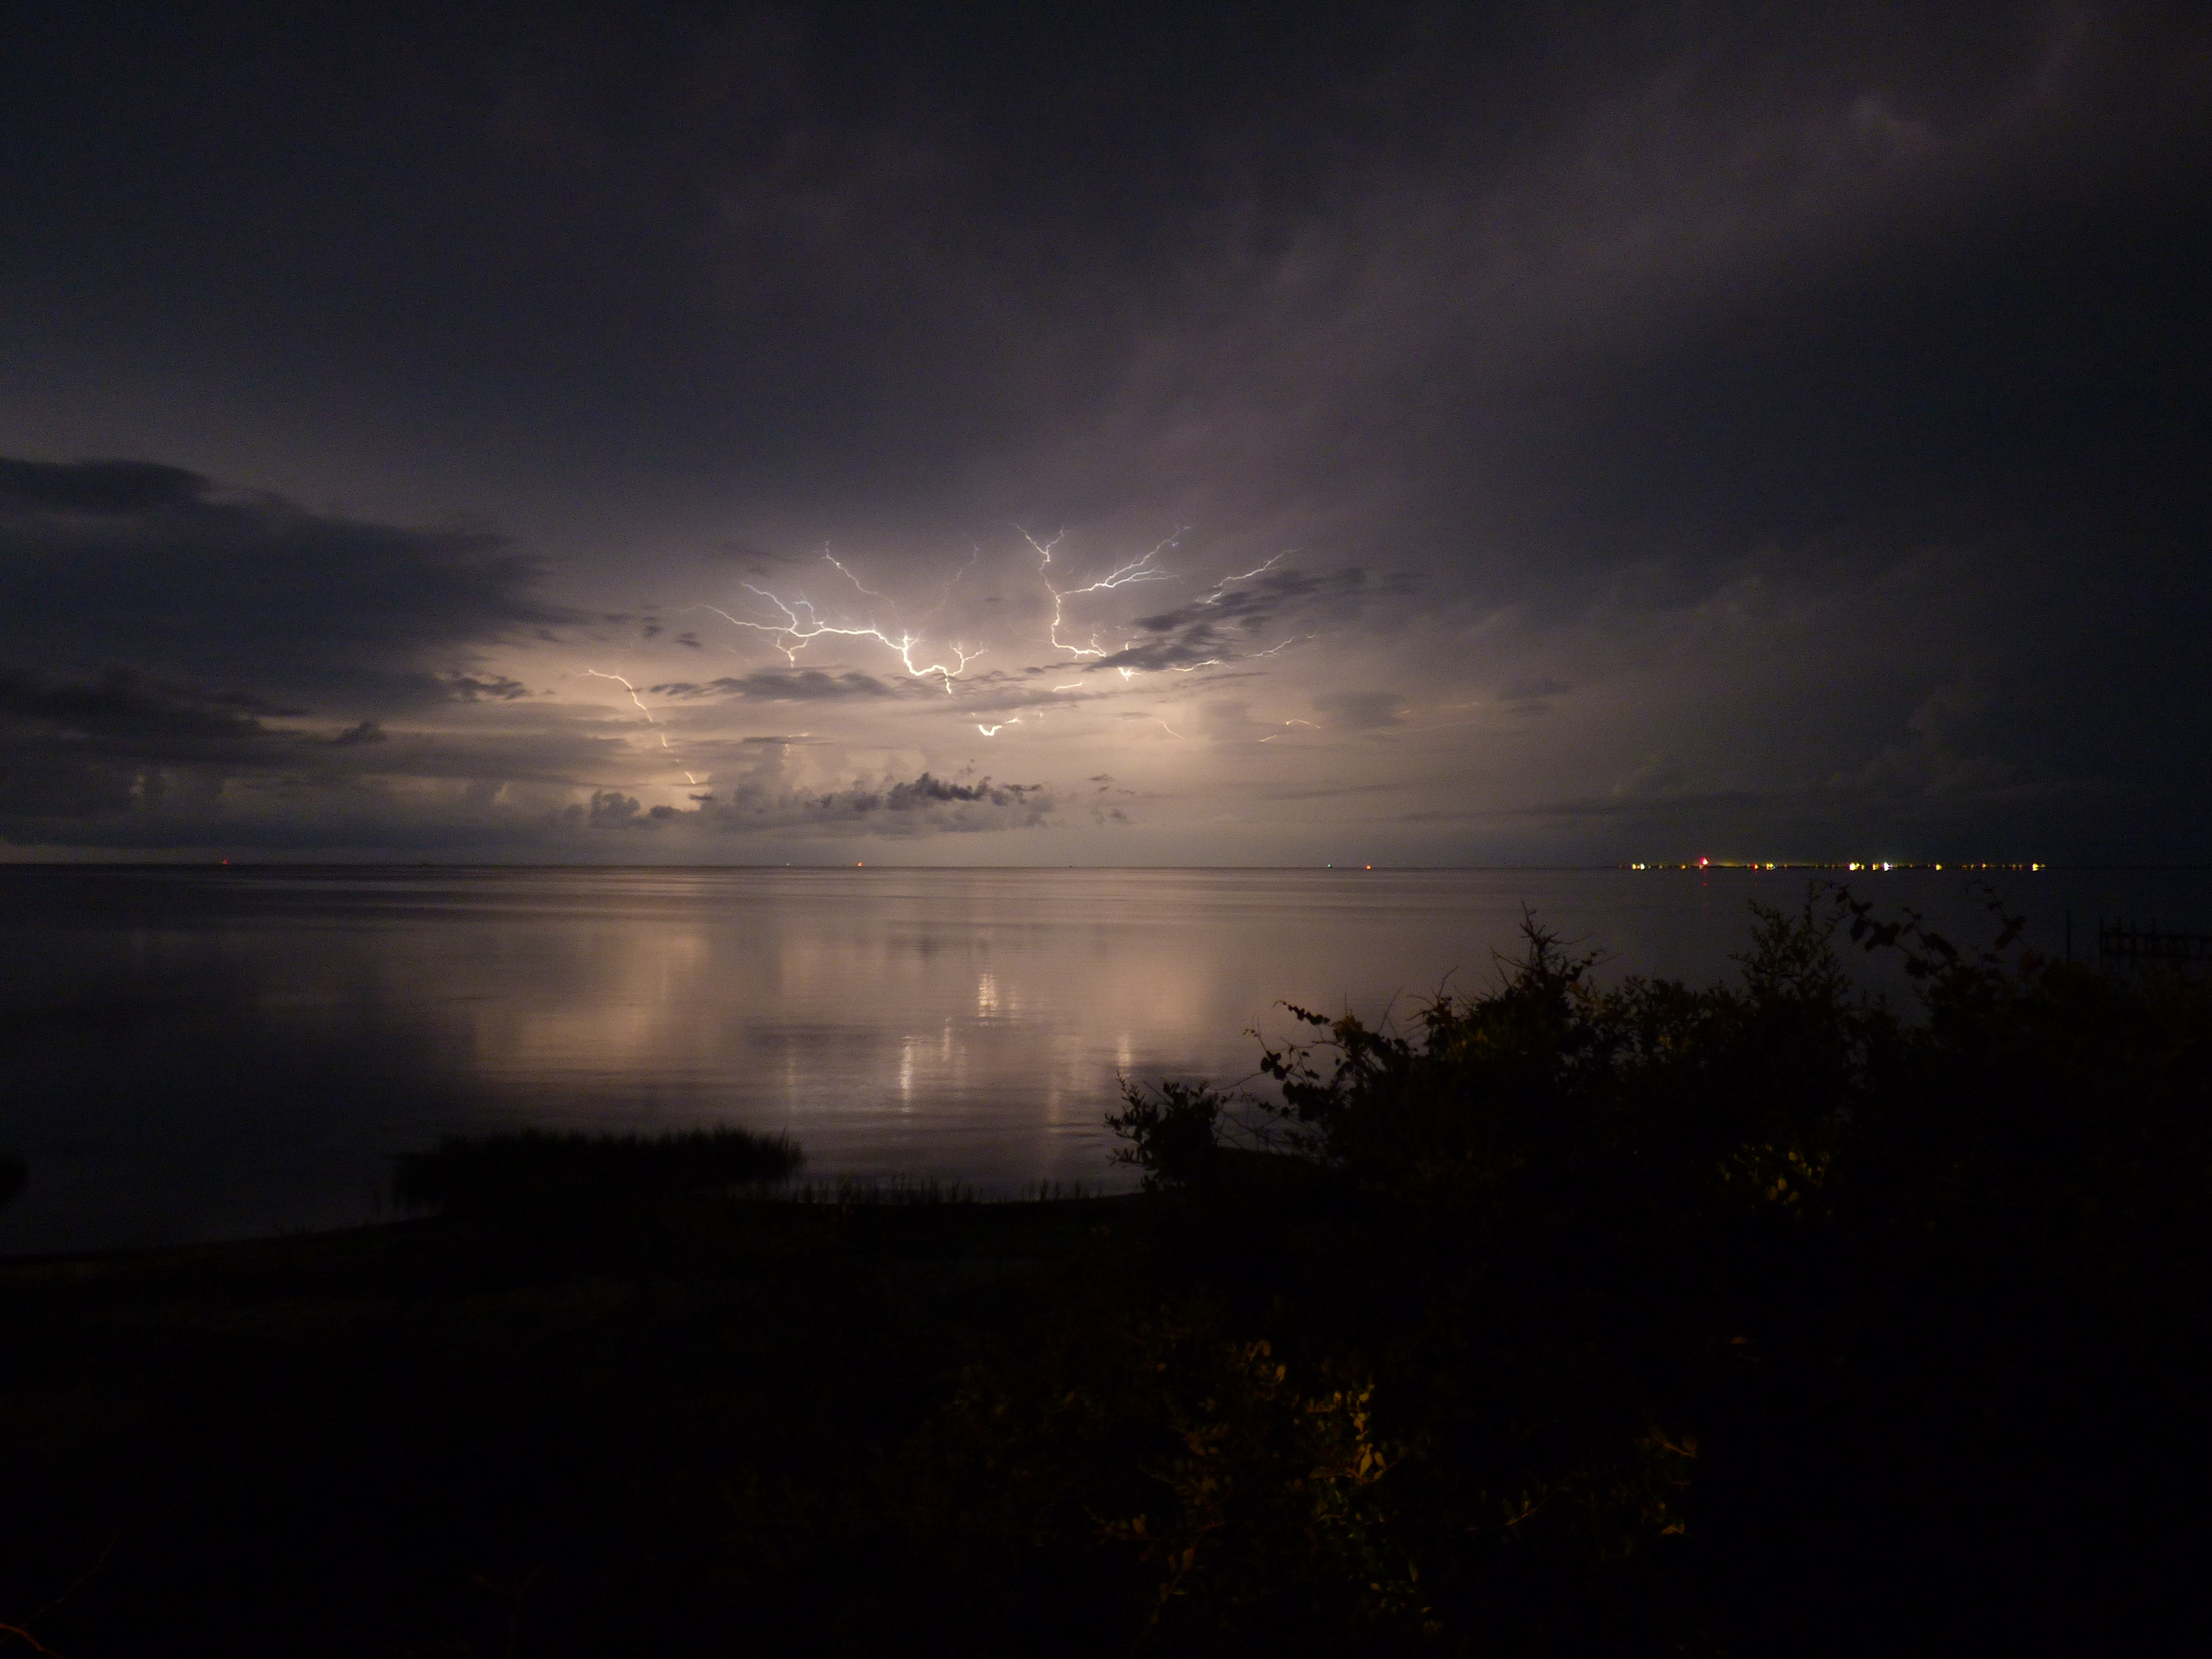 Lightning over the Pamlico Sound